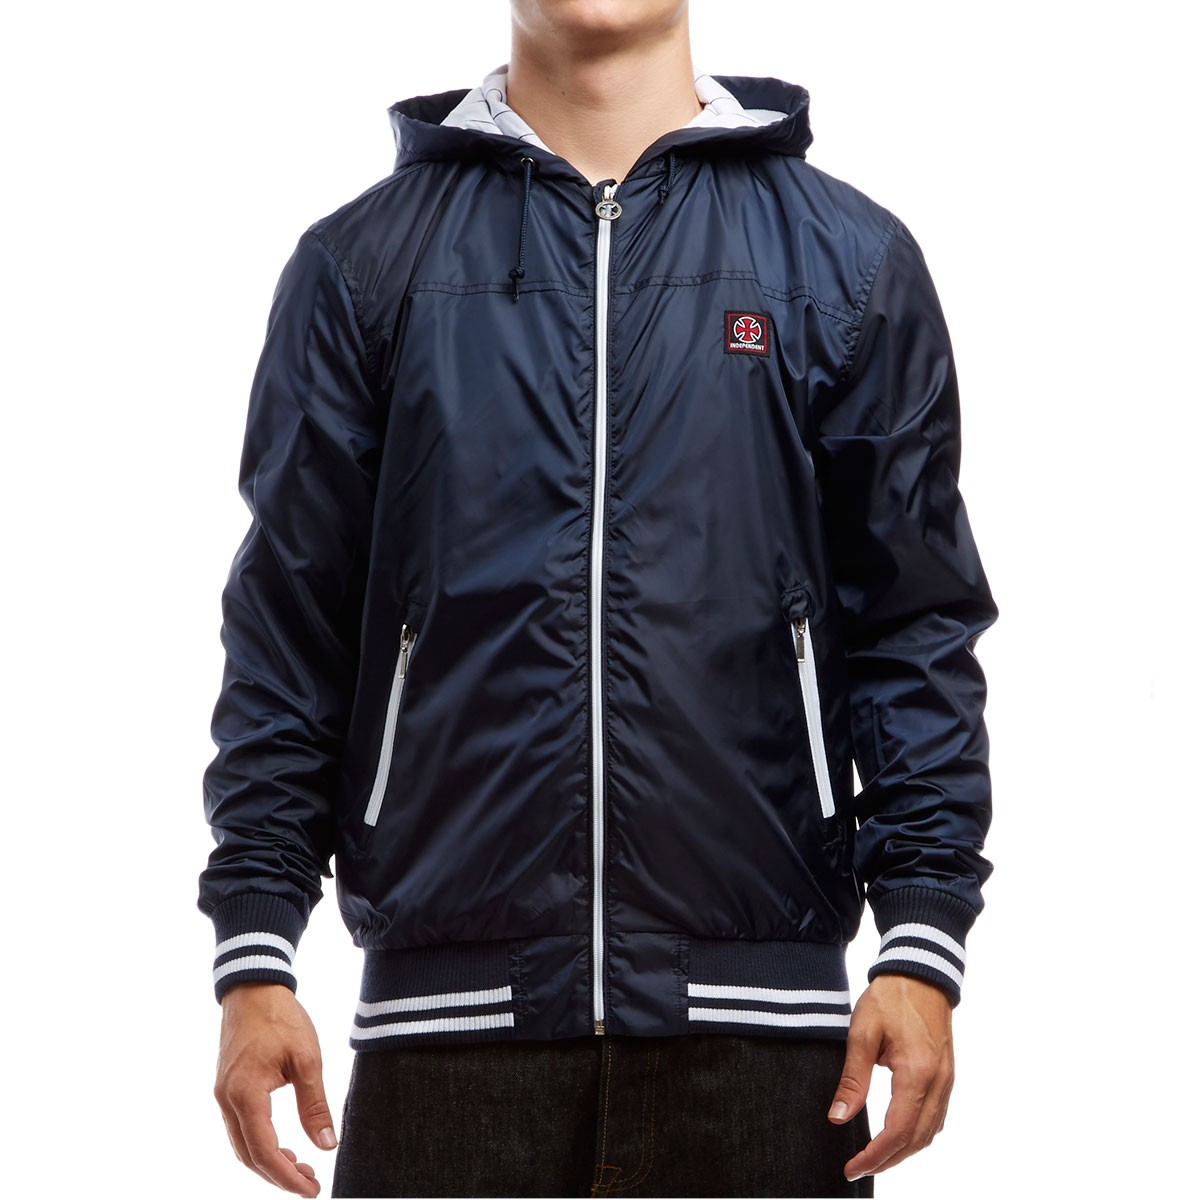 Capital Hooded Windbreaker Jacket - Navy